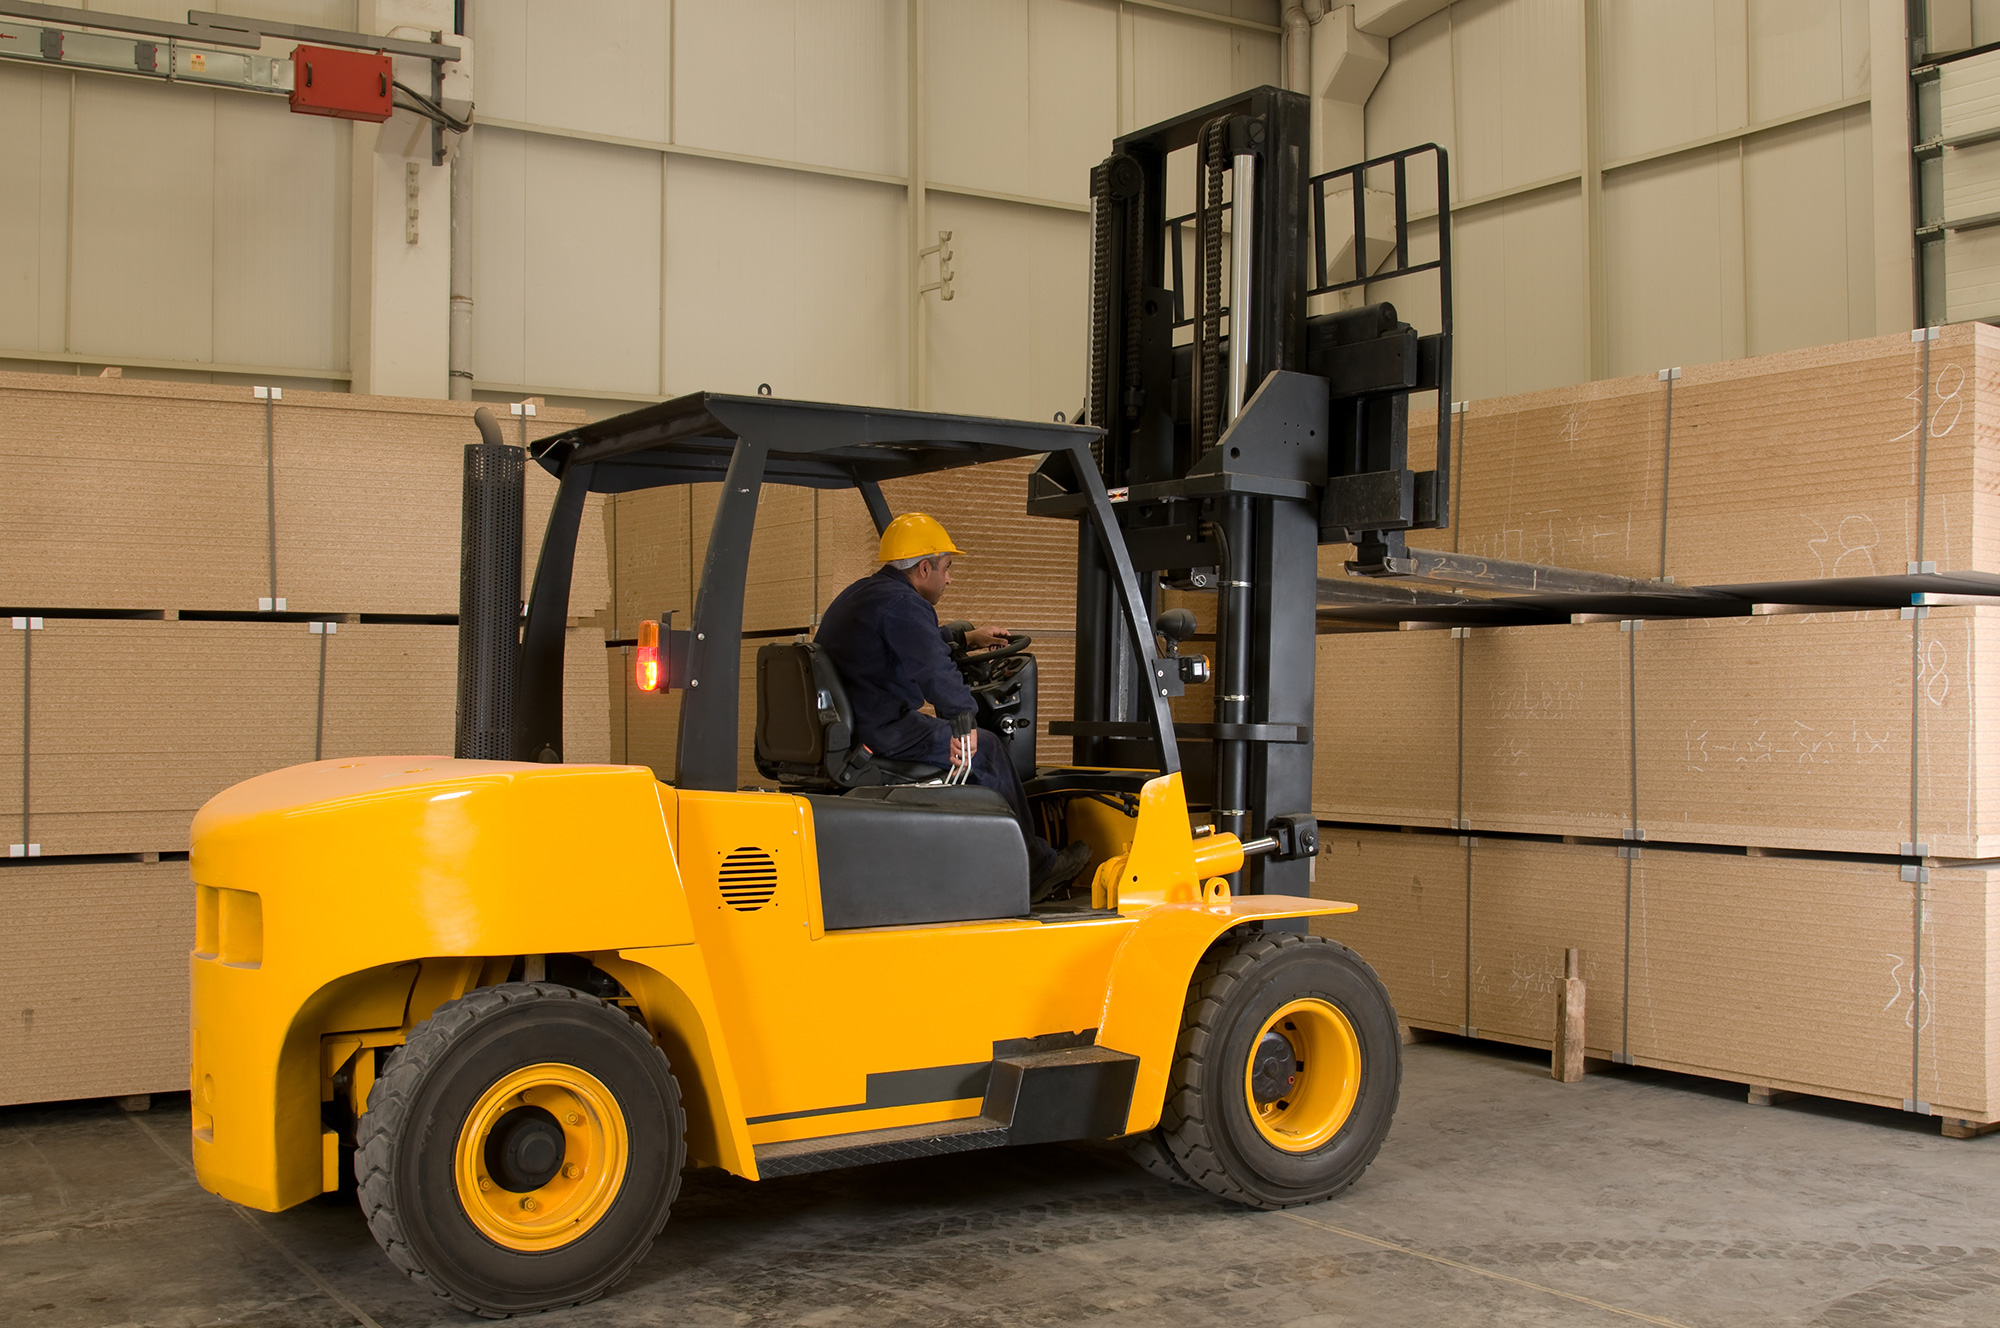 Corporate Services, Inc. is hiring Material Handlers — up to $17.00/hour — apply today!